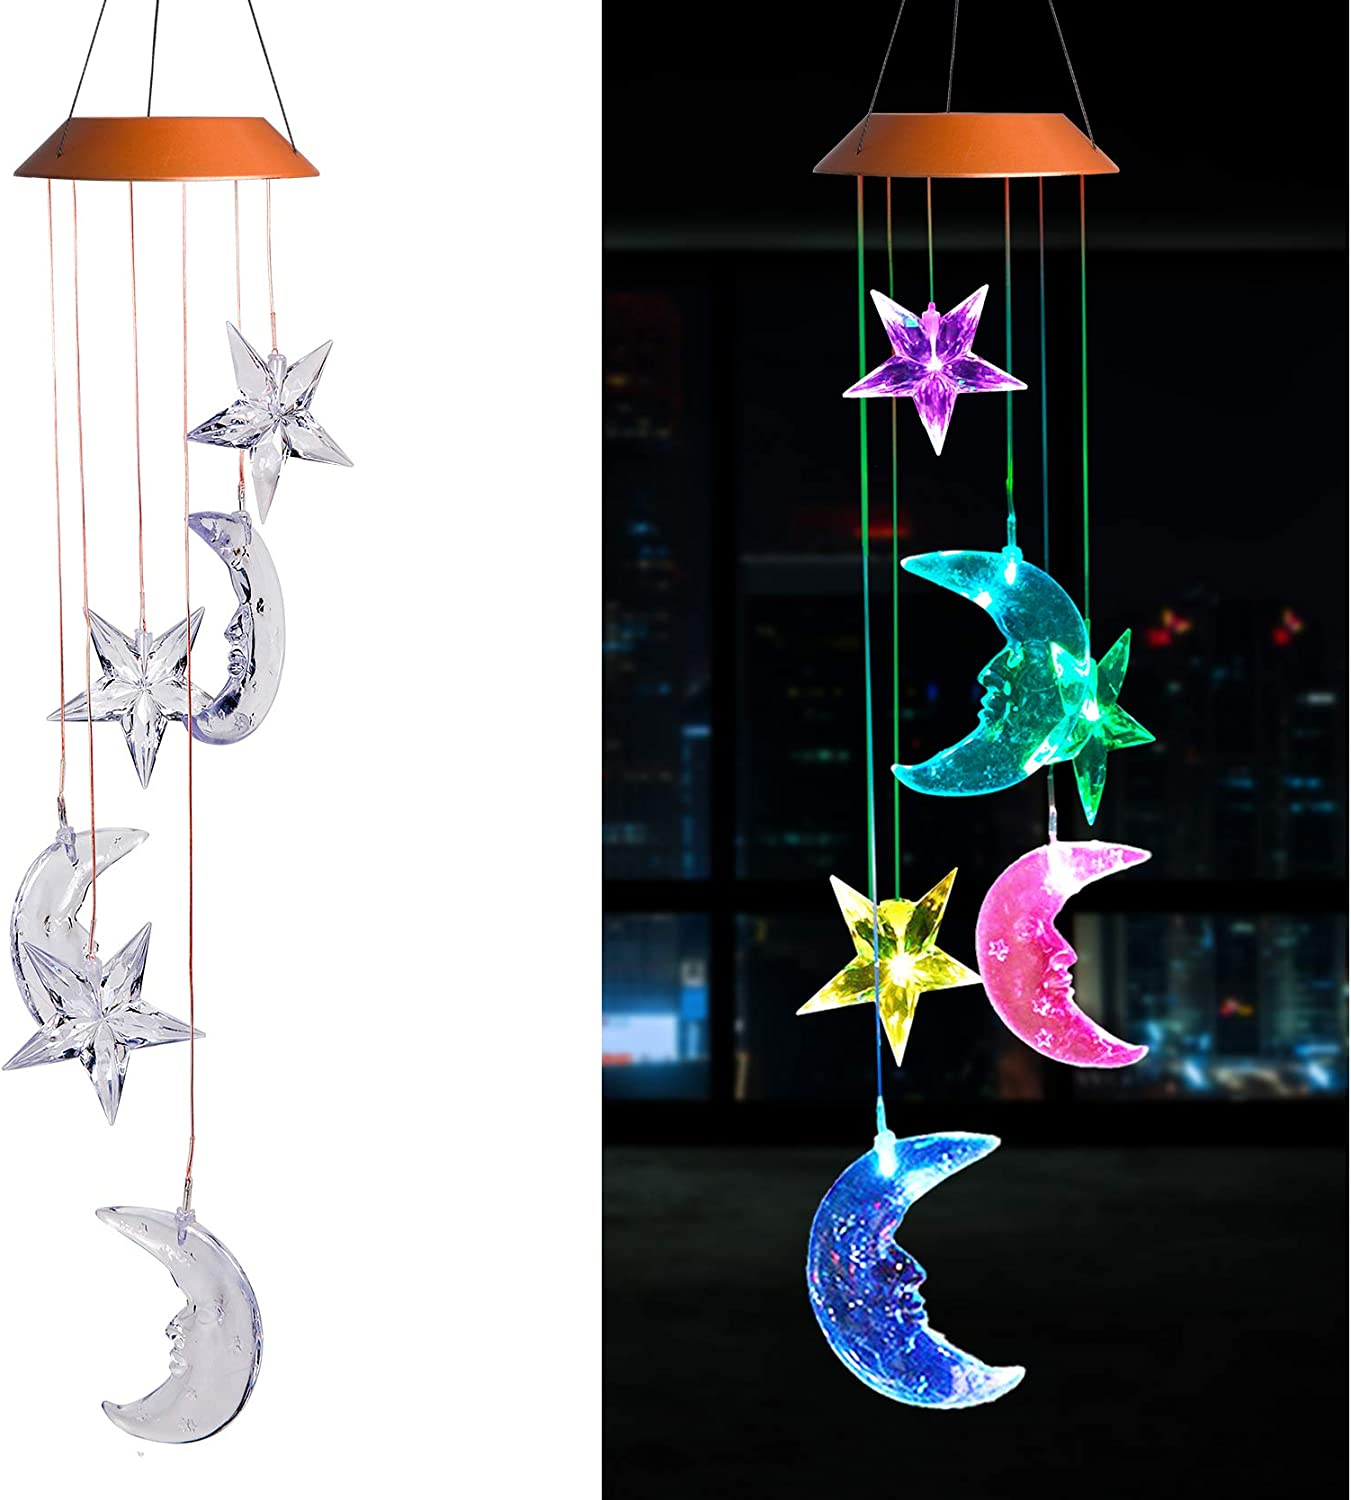 LED Solar Moon and Star Wind Chimes Outdoor - Waterproof Solar Mobile Romantic Changing Color Stars and Moon Wind Chimes Light Decor for Home, Gifts For Mom, Balcony, Festival, Night Garden Decoration : Garden & Outdoor